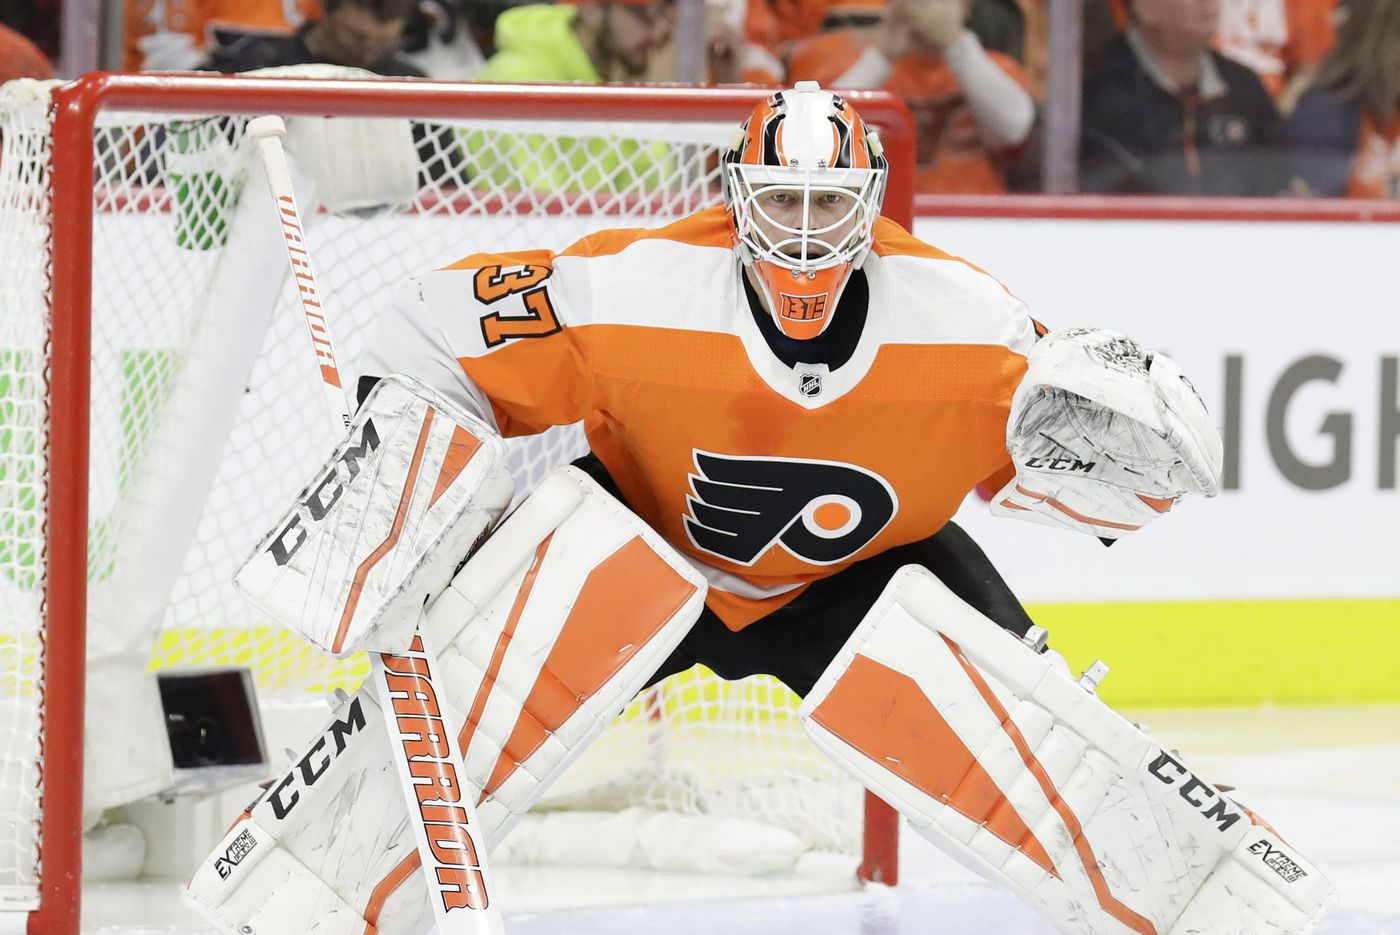 For Flyers, positions up for grabs as they face Rangers